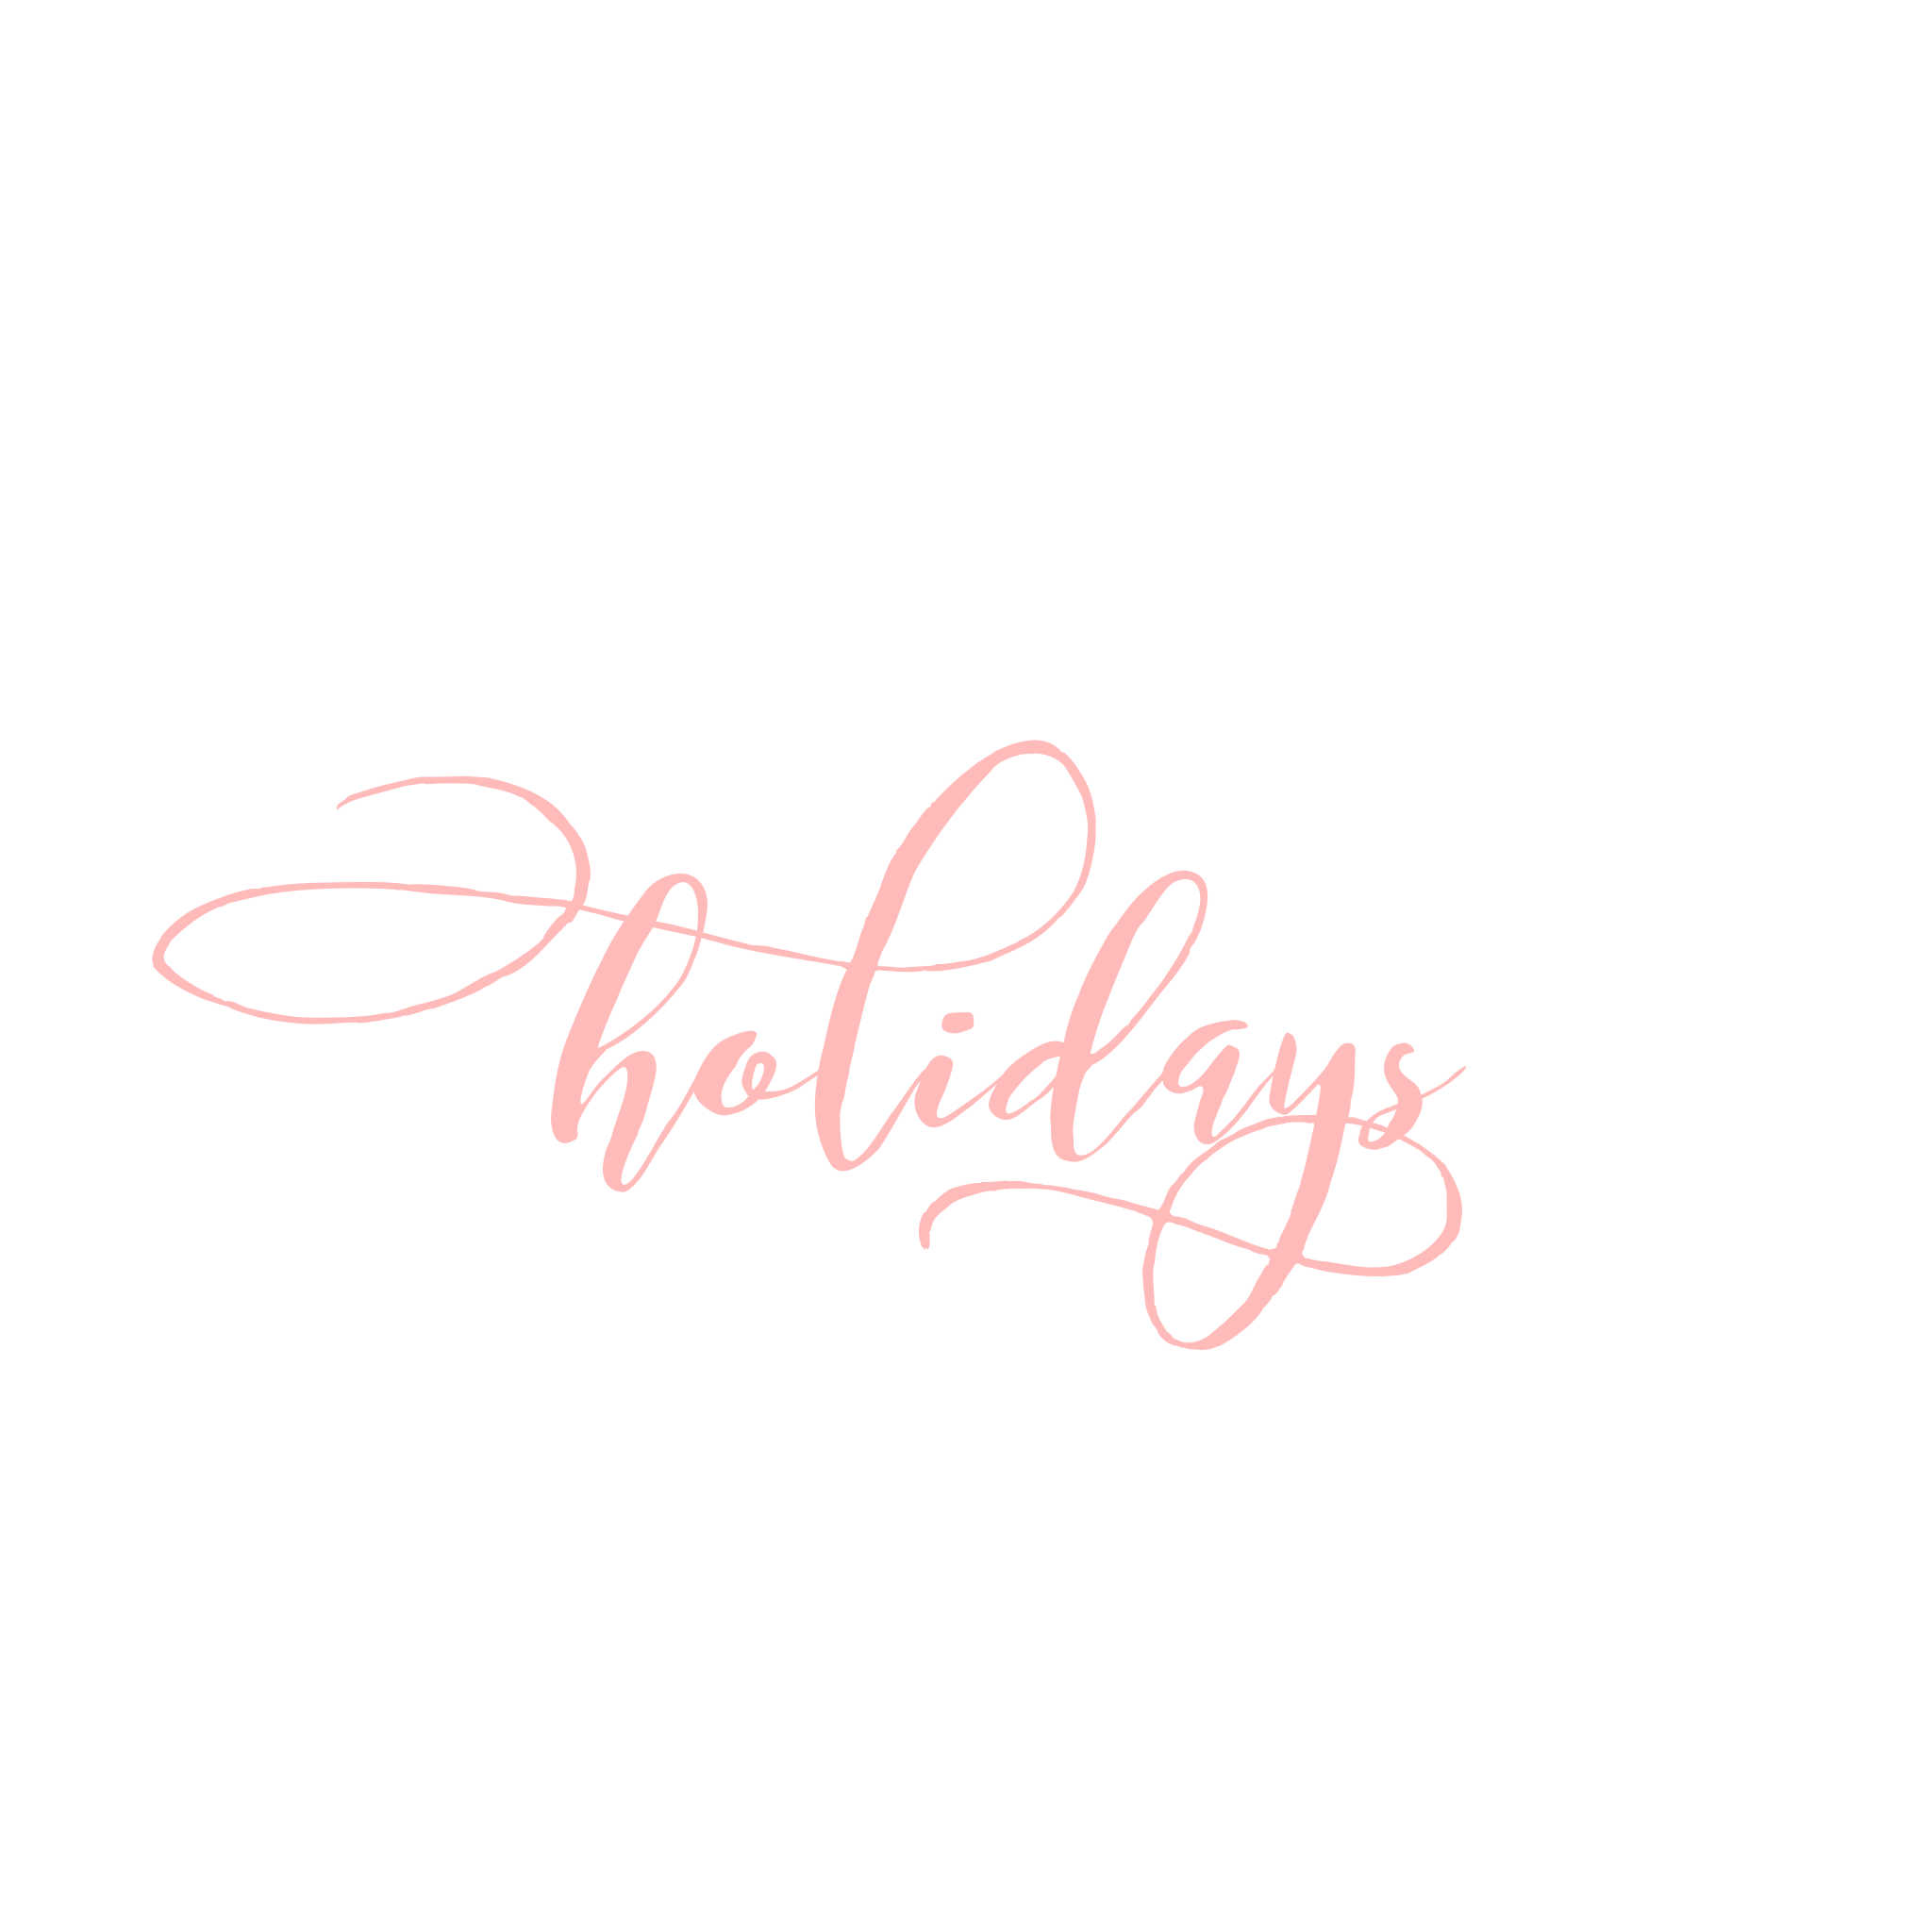 We are closed on holidays. If permitted this is an additional service charge for all holidays